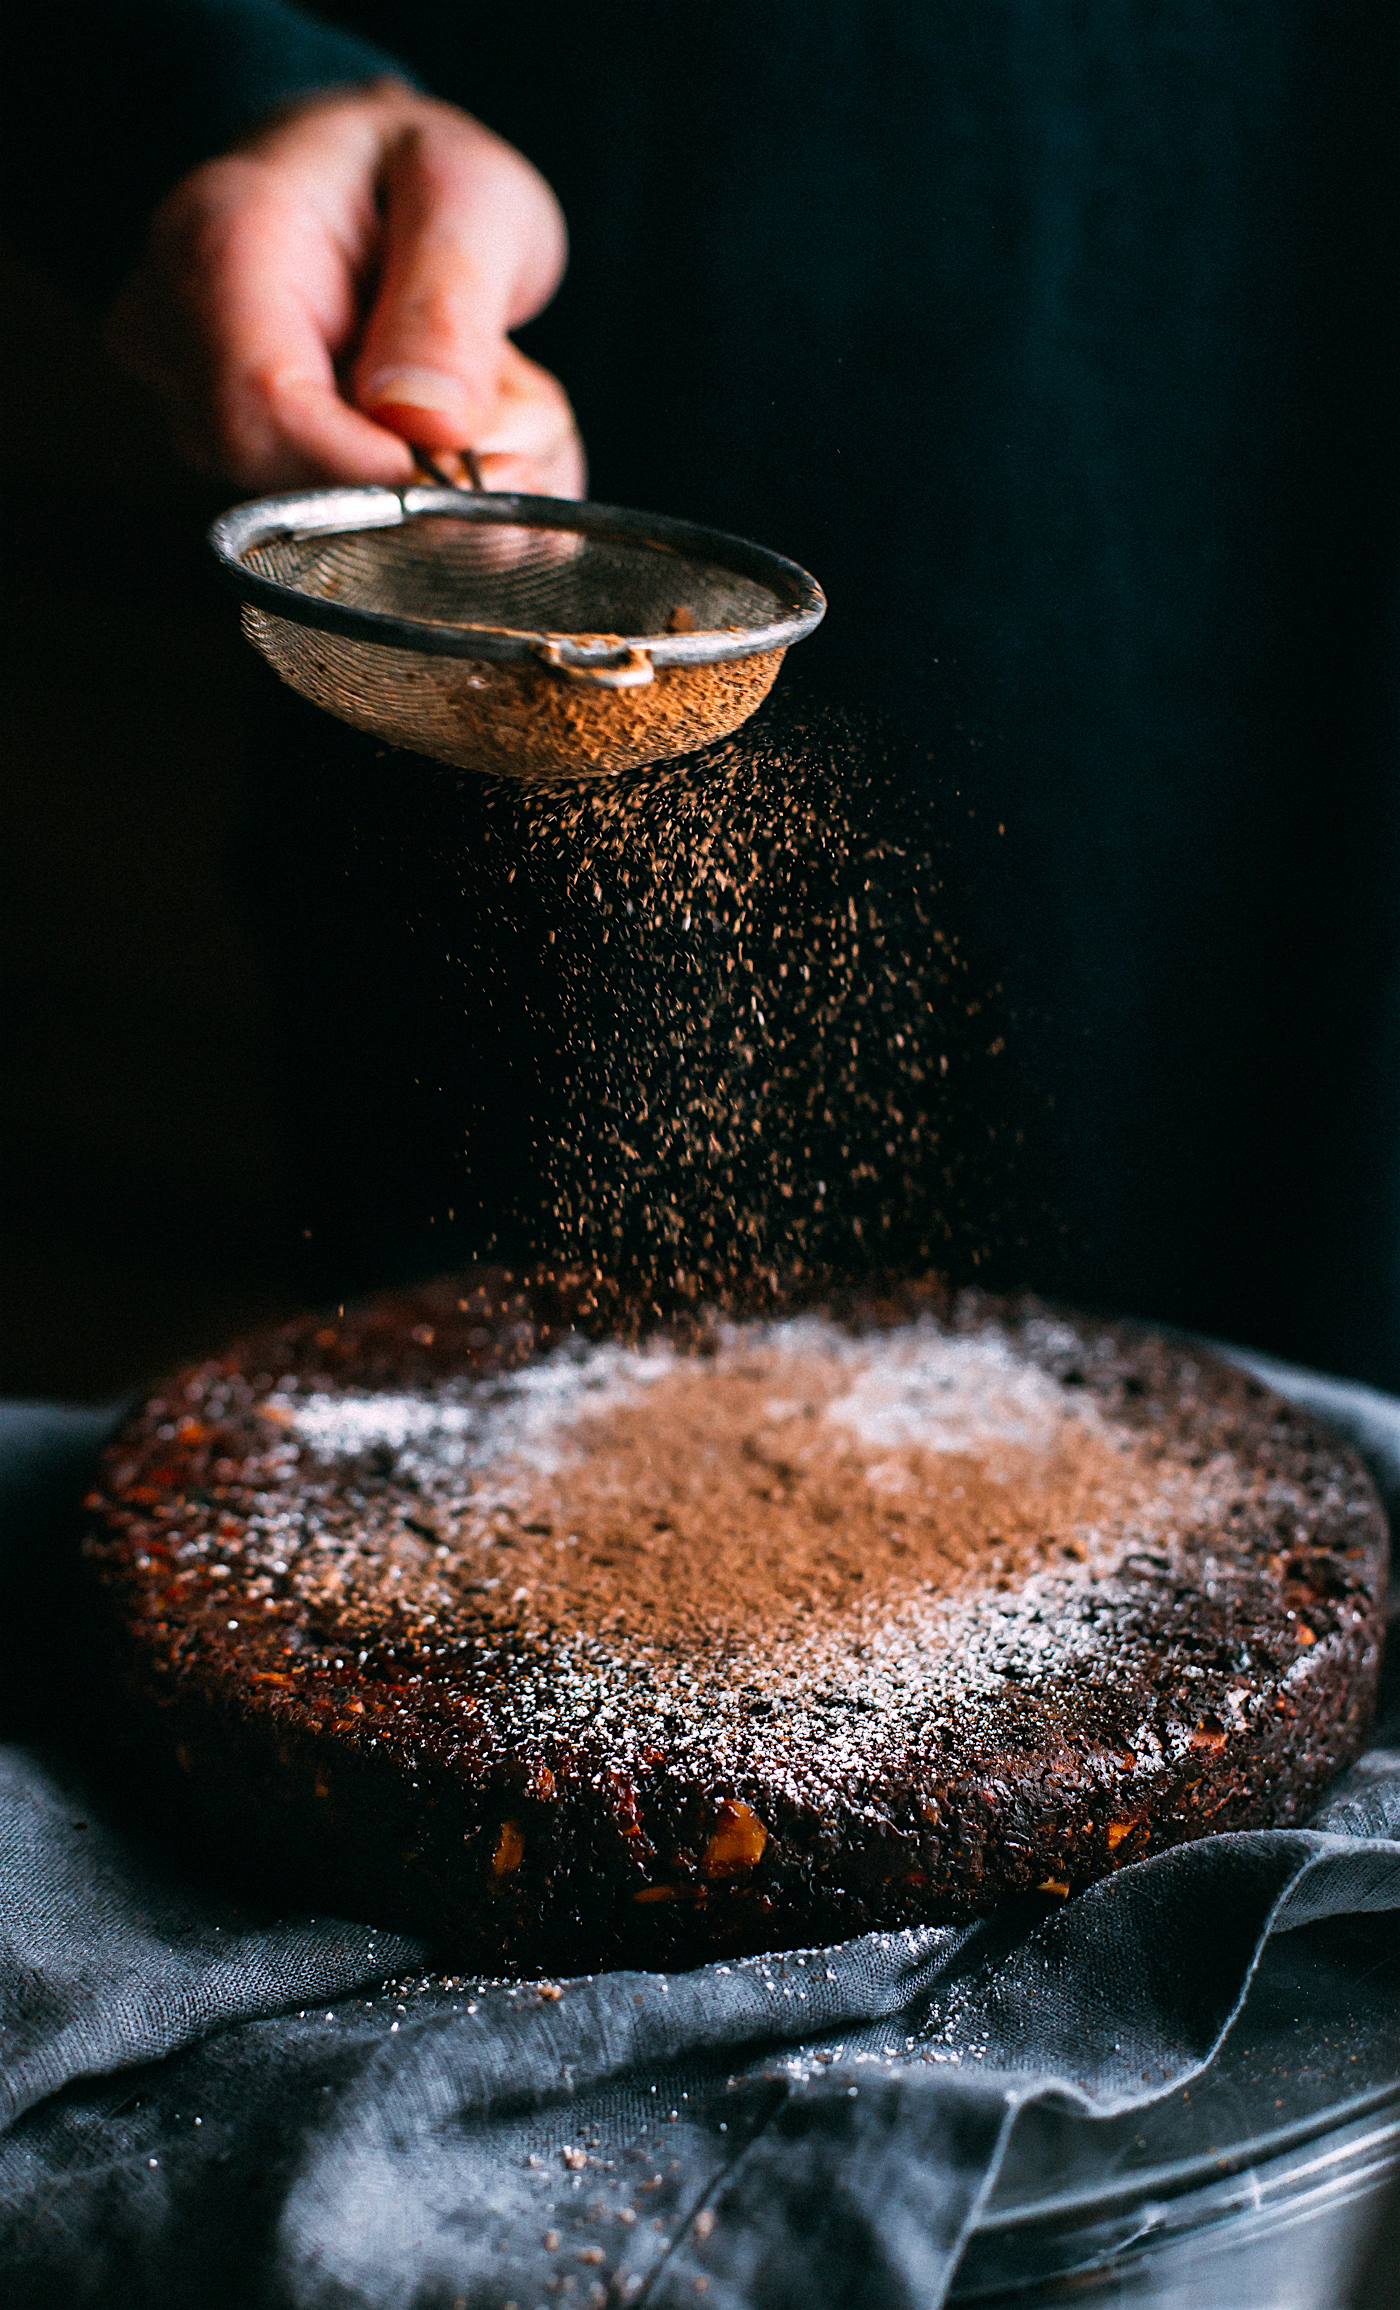 dusting cacao powder over a chocolate Christmas cake (Panforte)